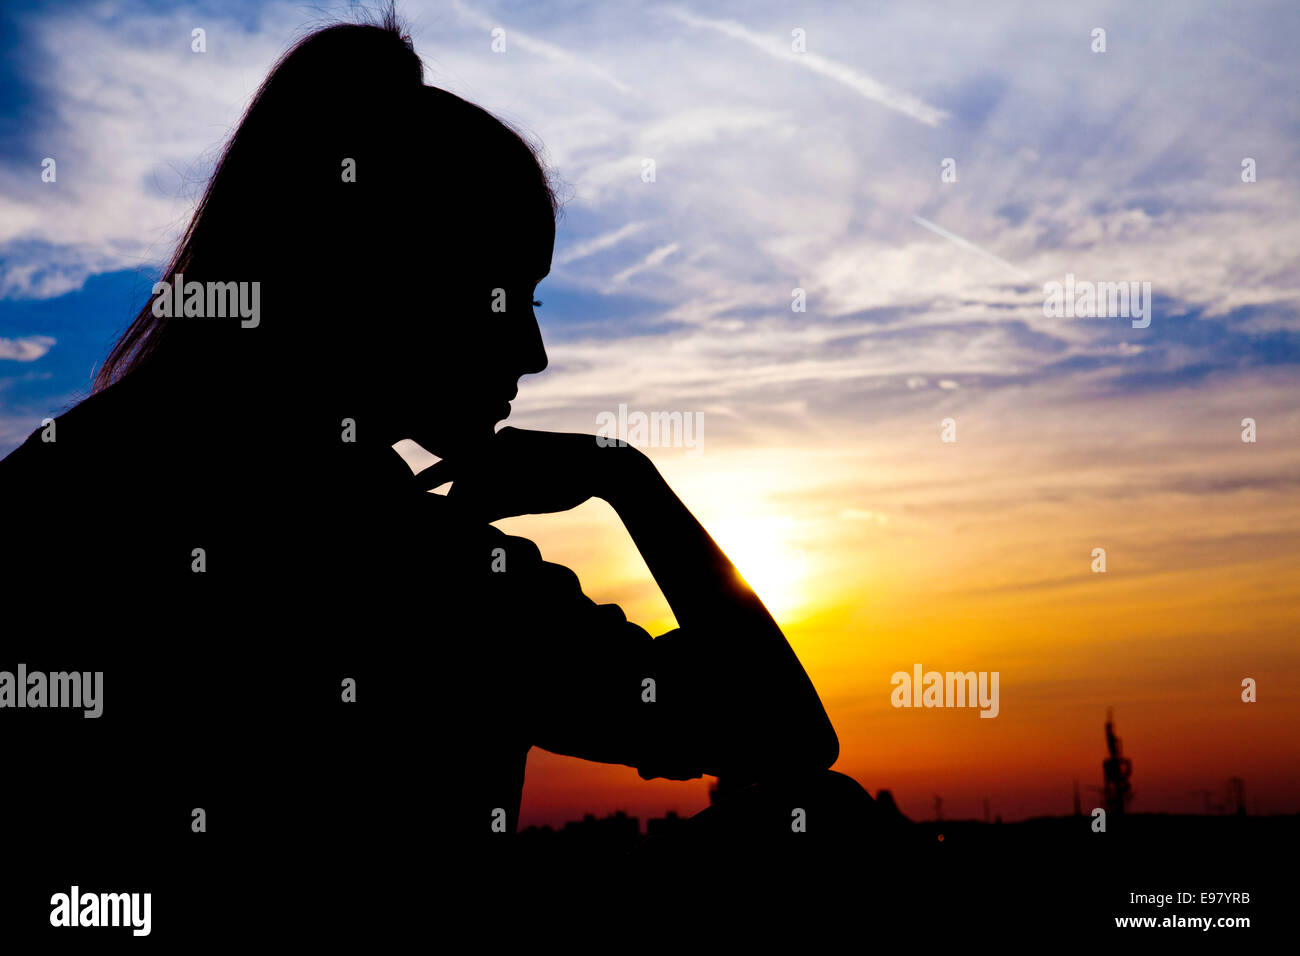 Silhouette of young woman with hand on chin at sunset - Stock Image